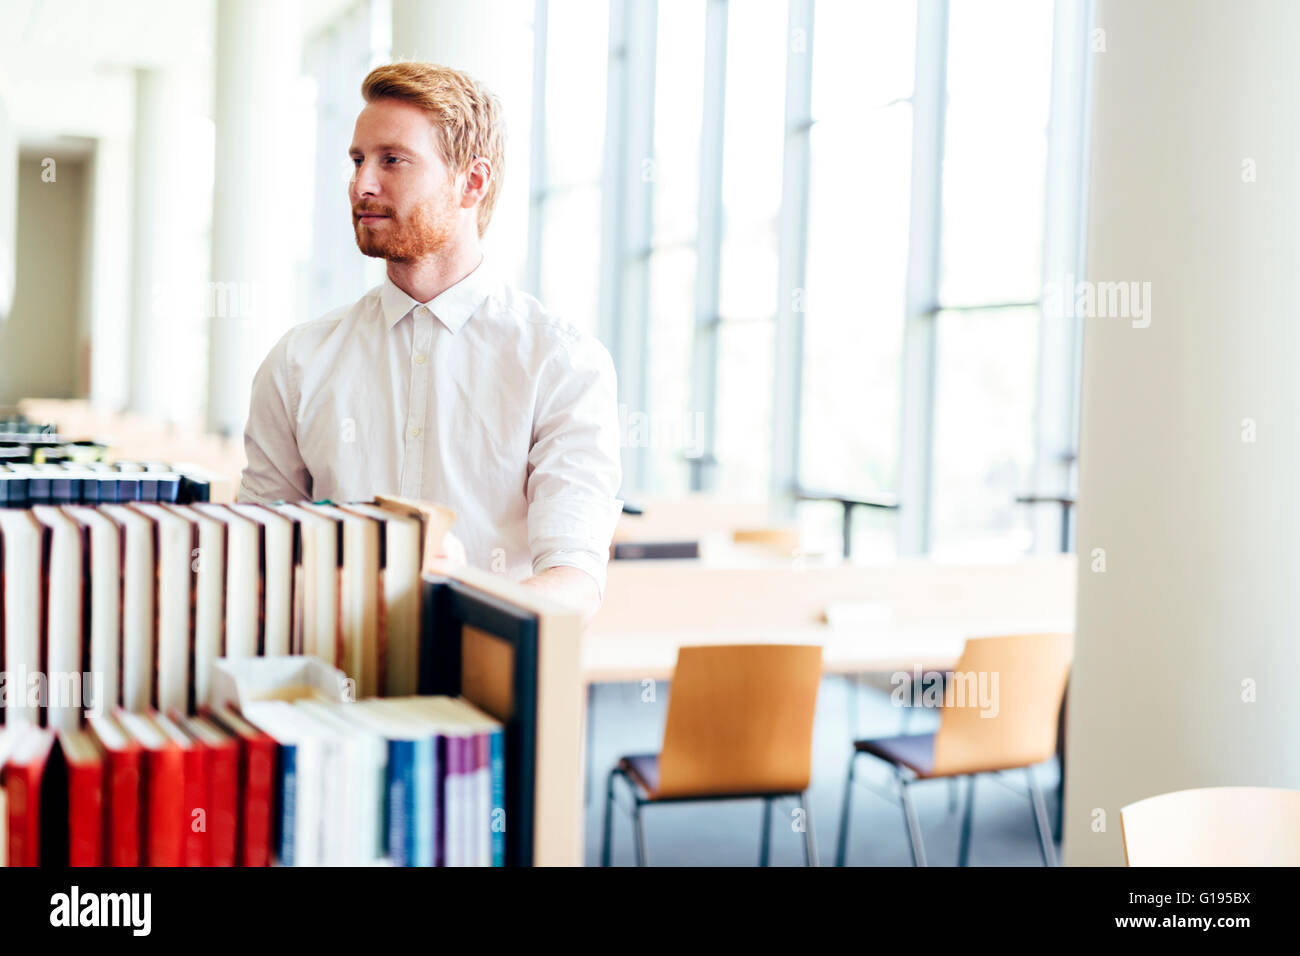 Handsome student searching for a book in a beautiful library - Stock Image